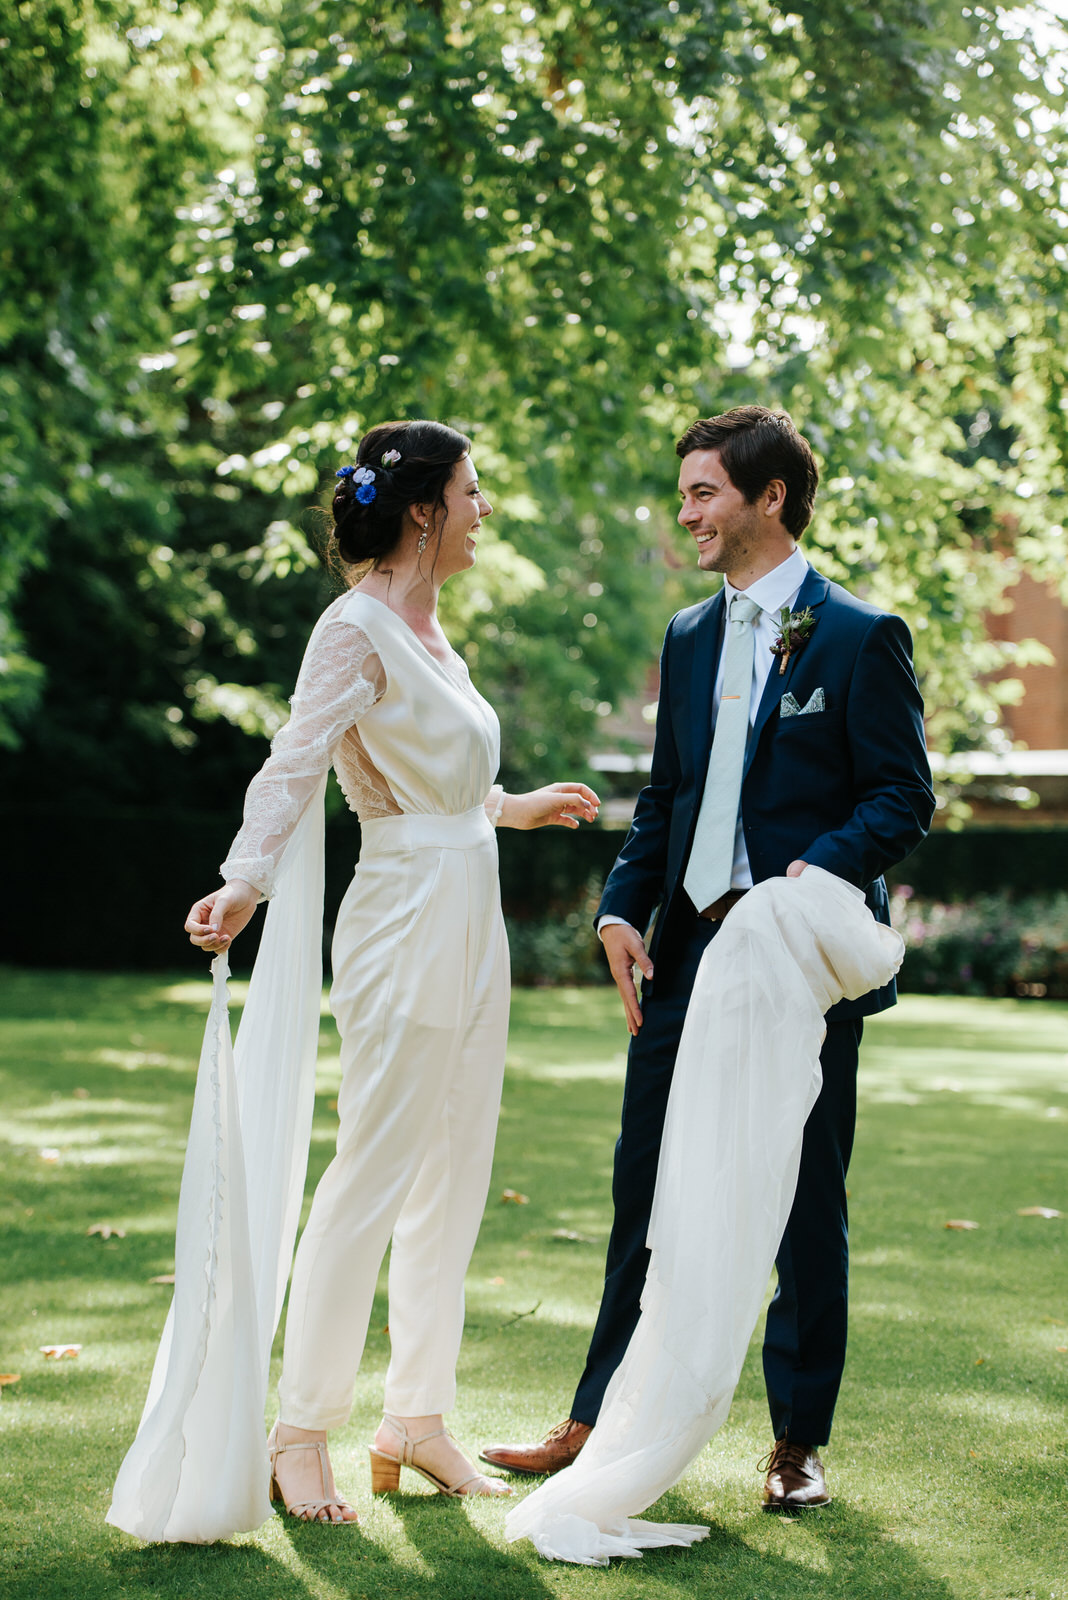 Groom smiles at bride as he holds the wedding skirt she has just